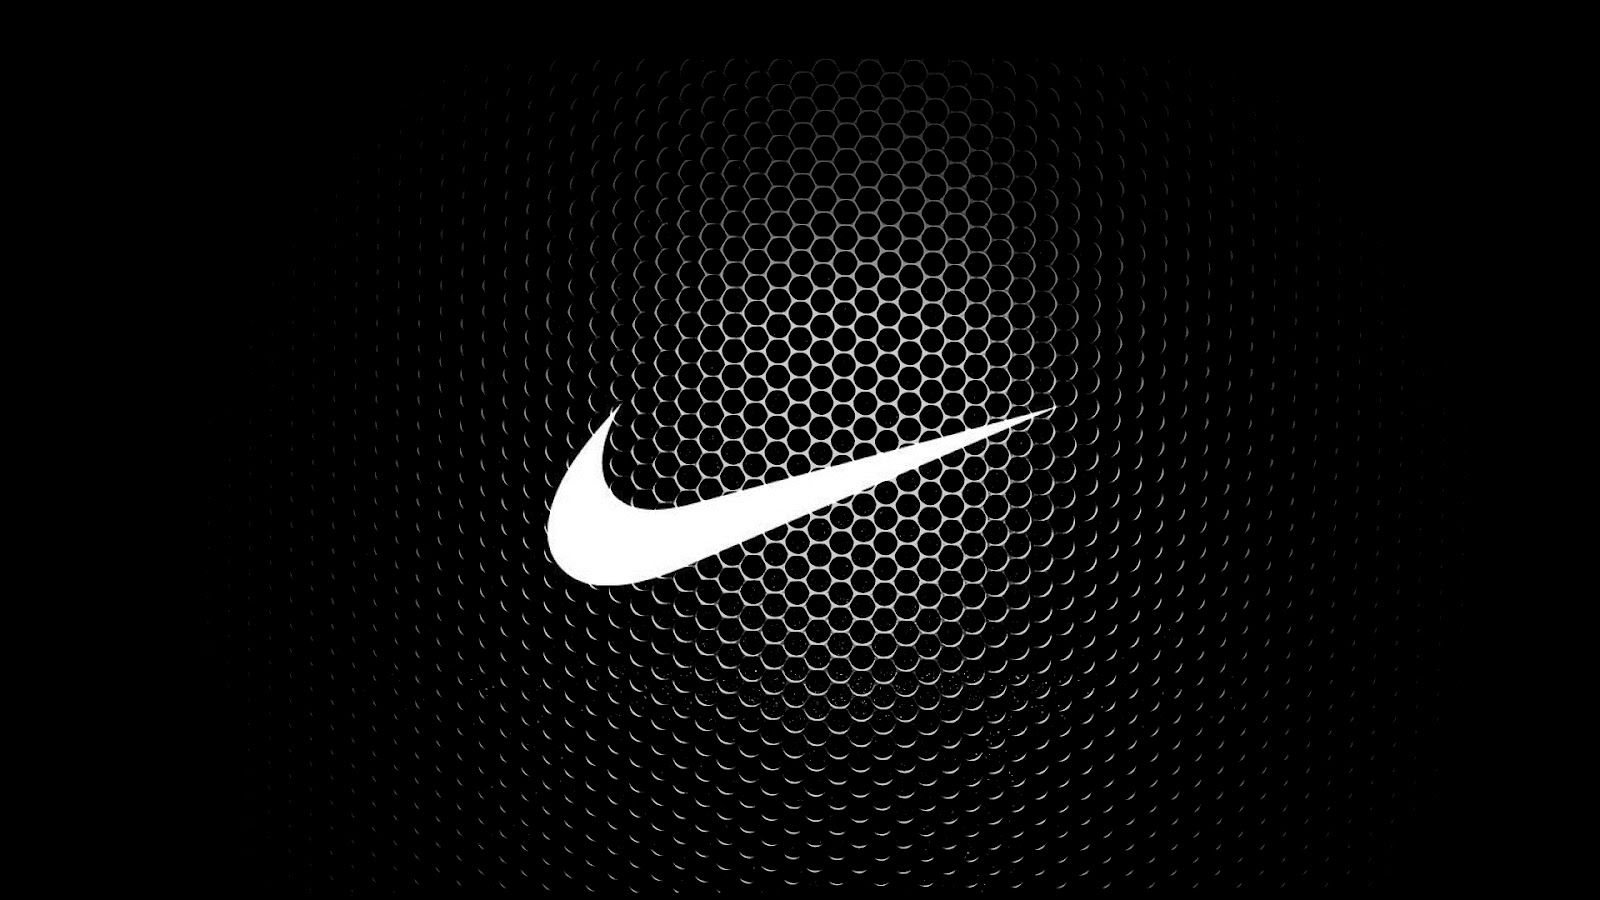 New White And Black Nike Logo Best HD Wallpaper Background